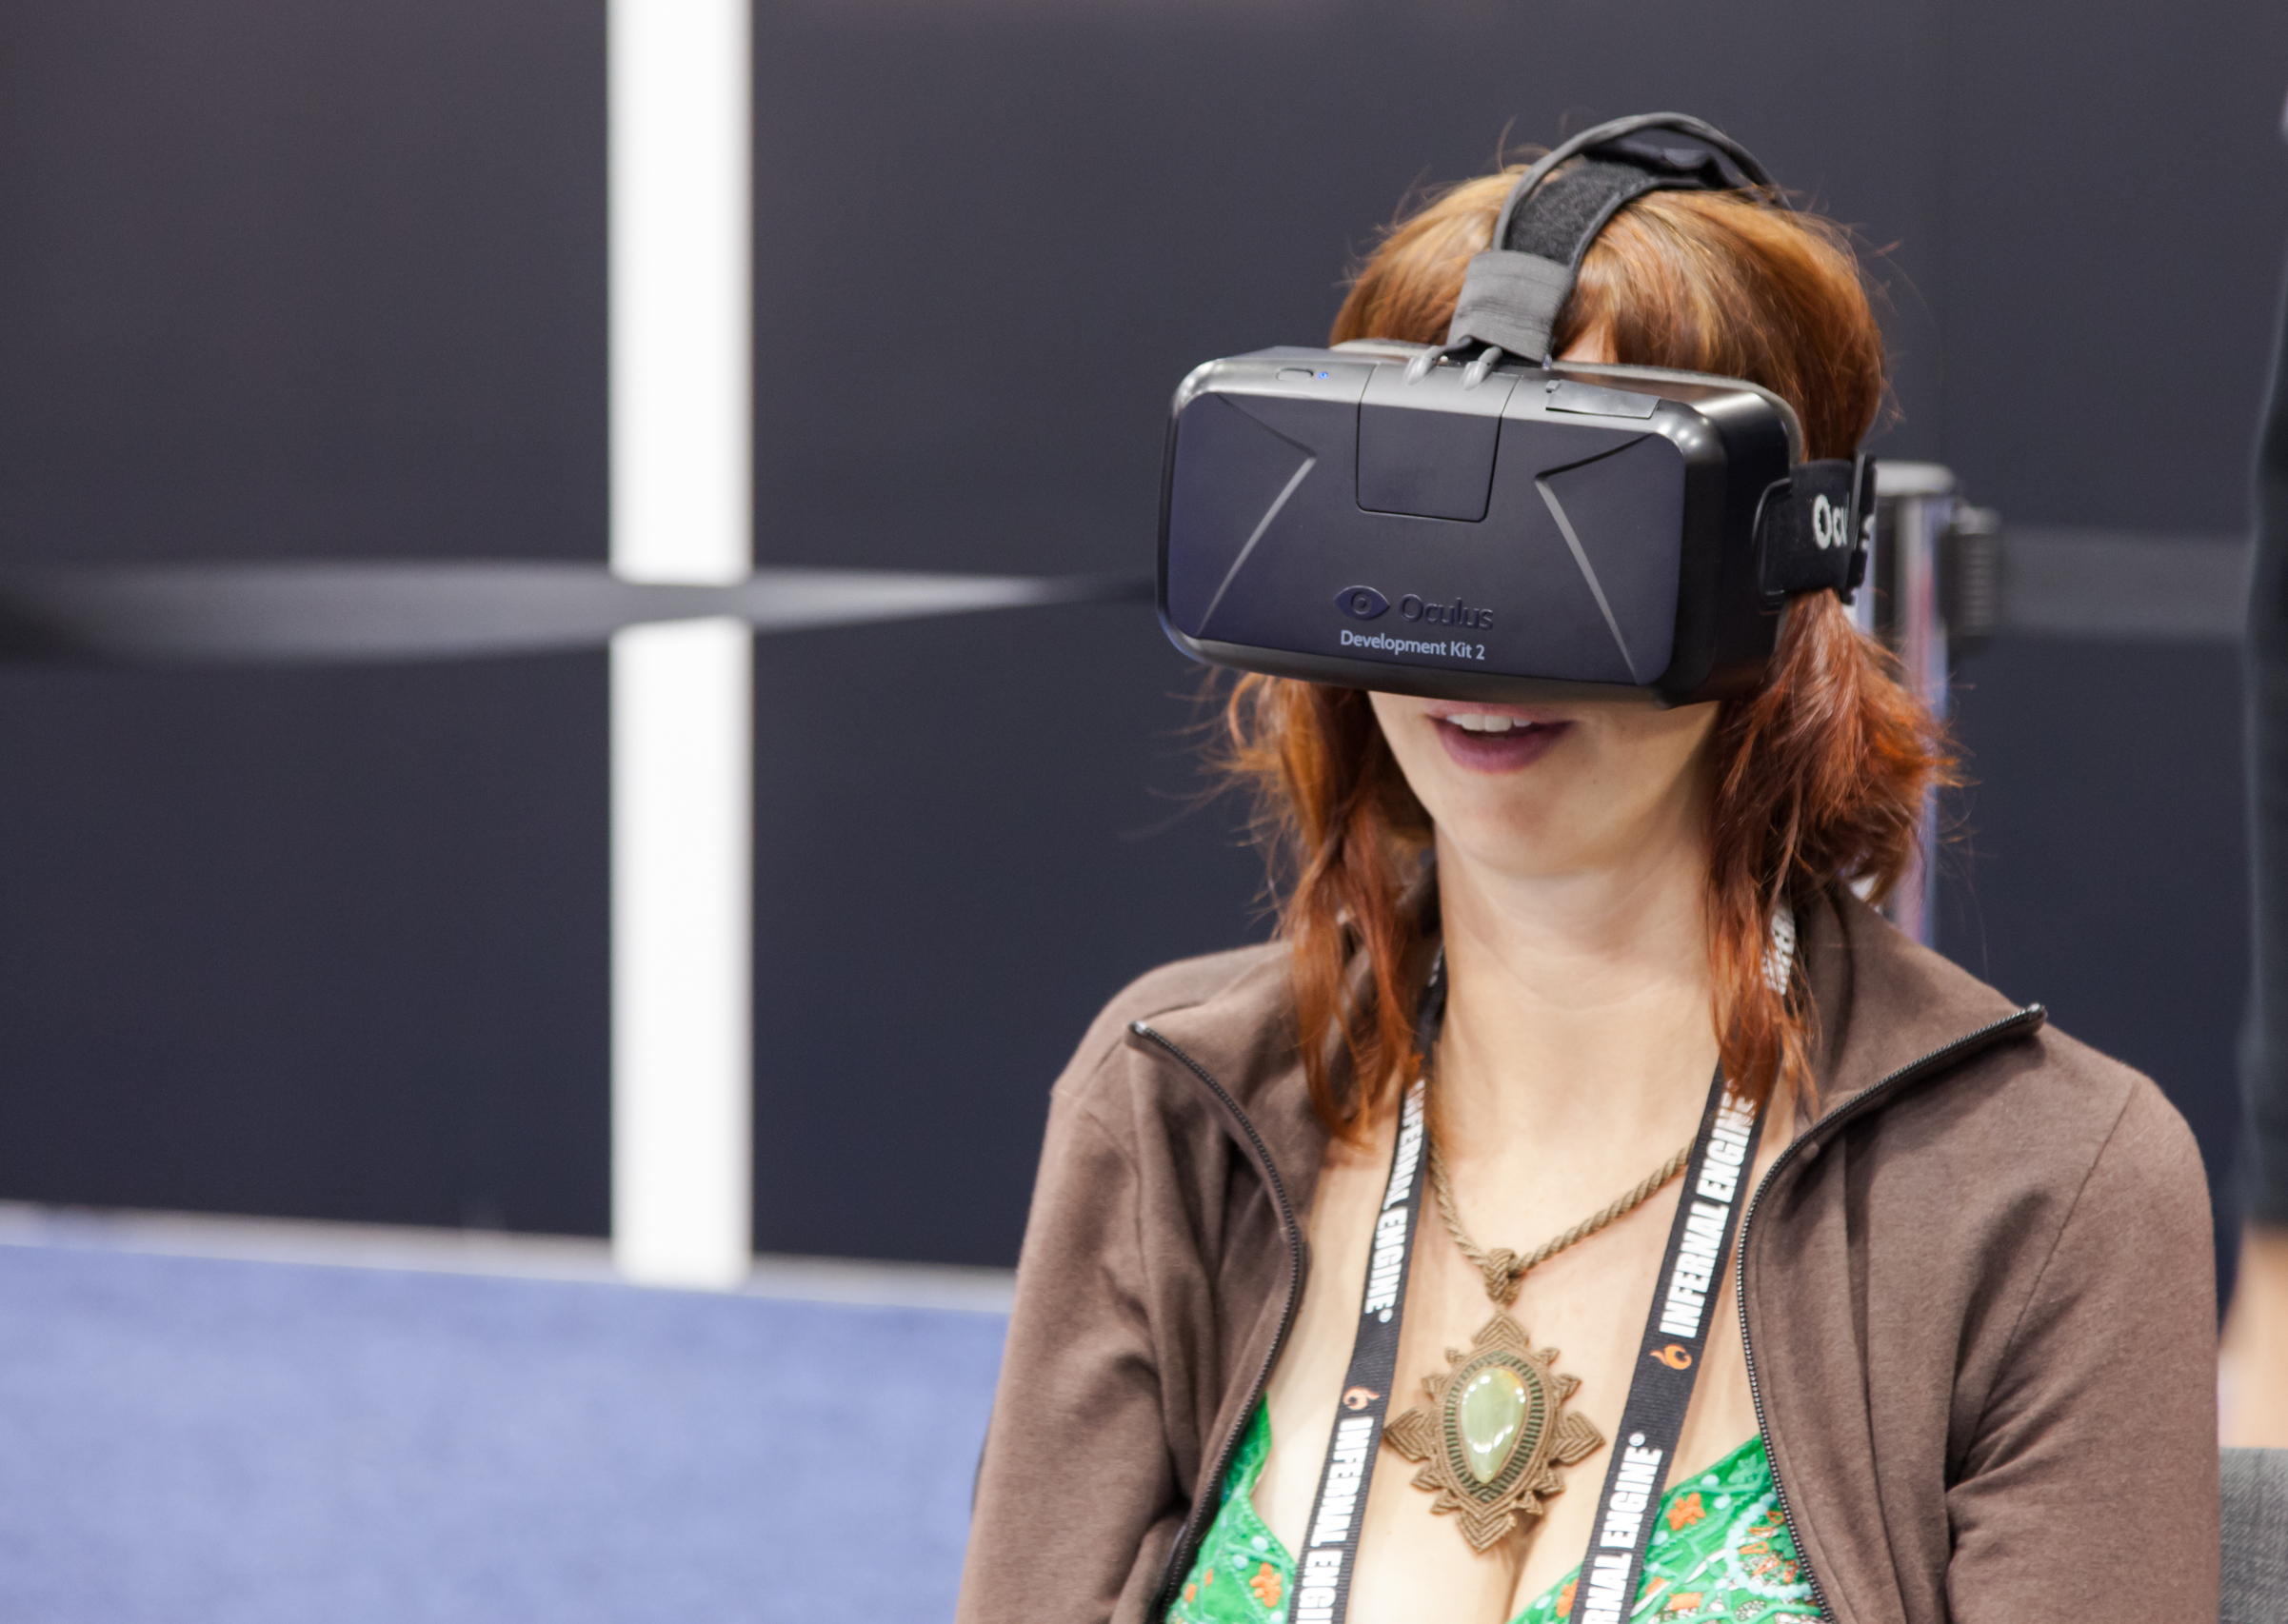 Oculus VR unveiling the second version of The Rift, its Virtual Reality headset for PC just before being bought by Facebook at GDC 2014 on March 20, 2014 in San Francisco, CA (Barone Firenze/Shutterstock)